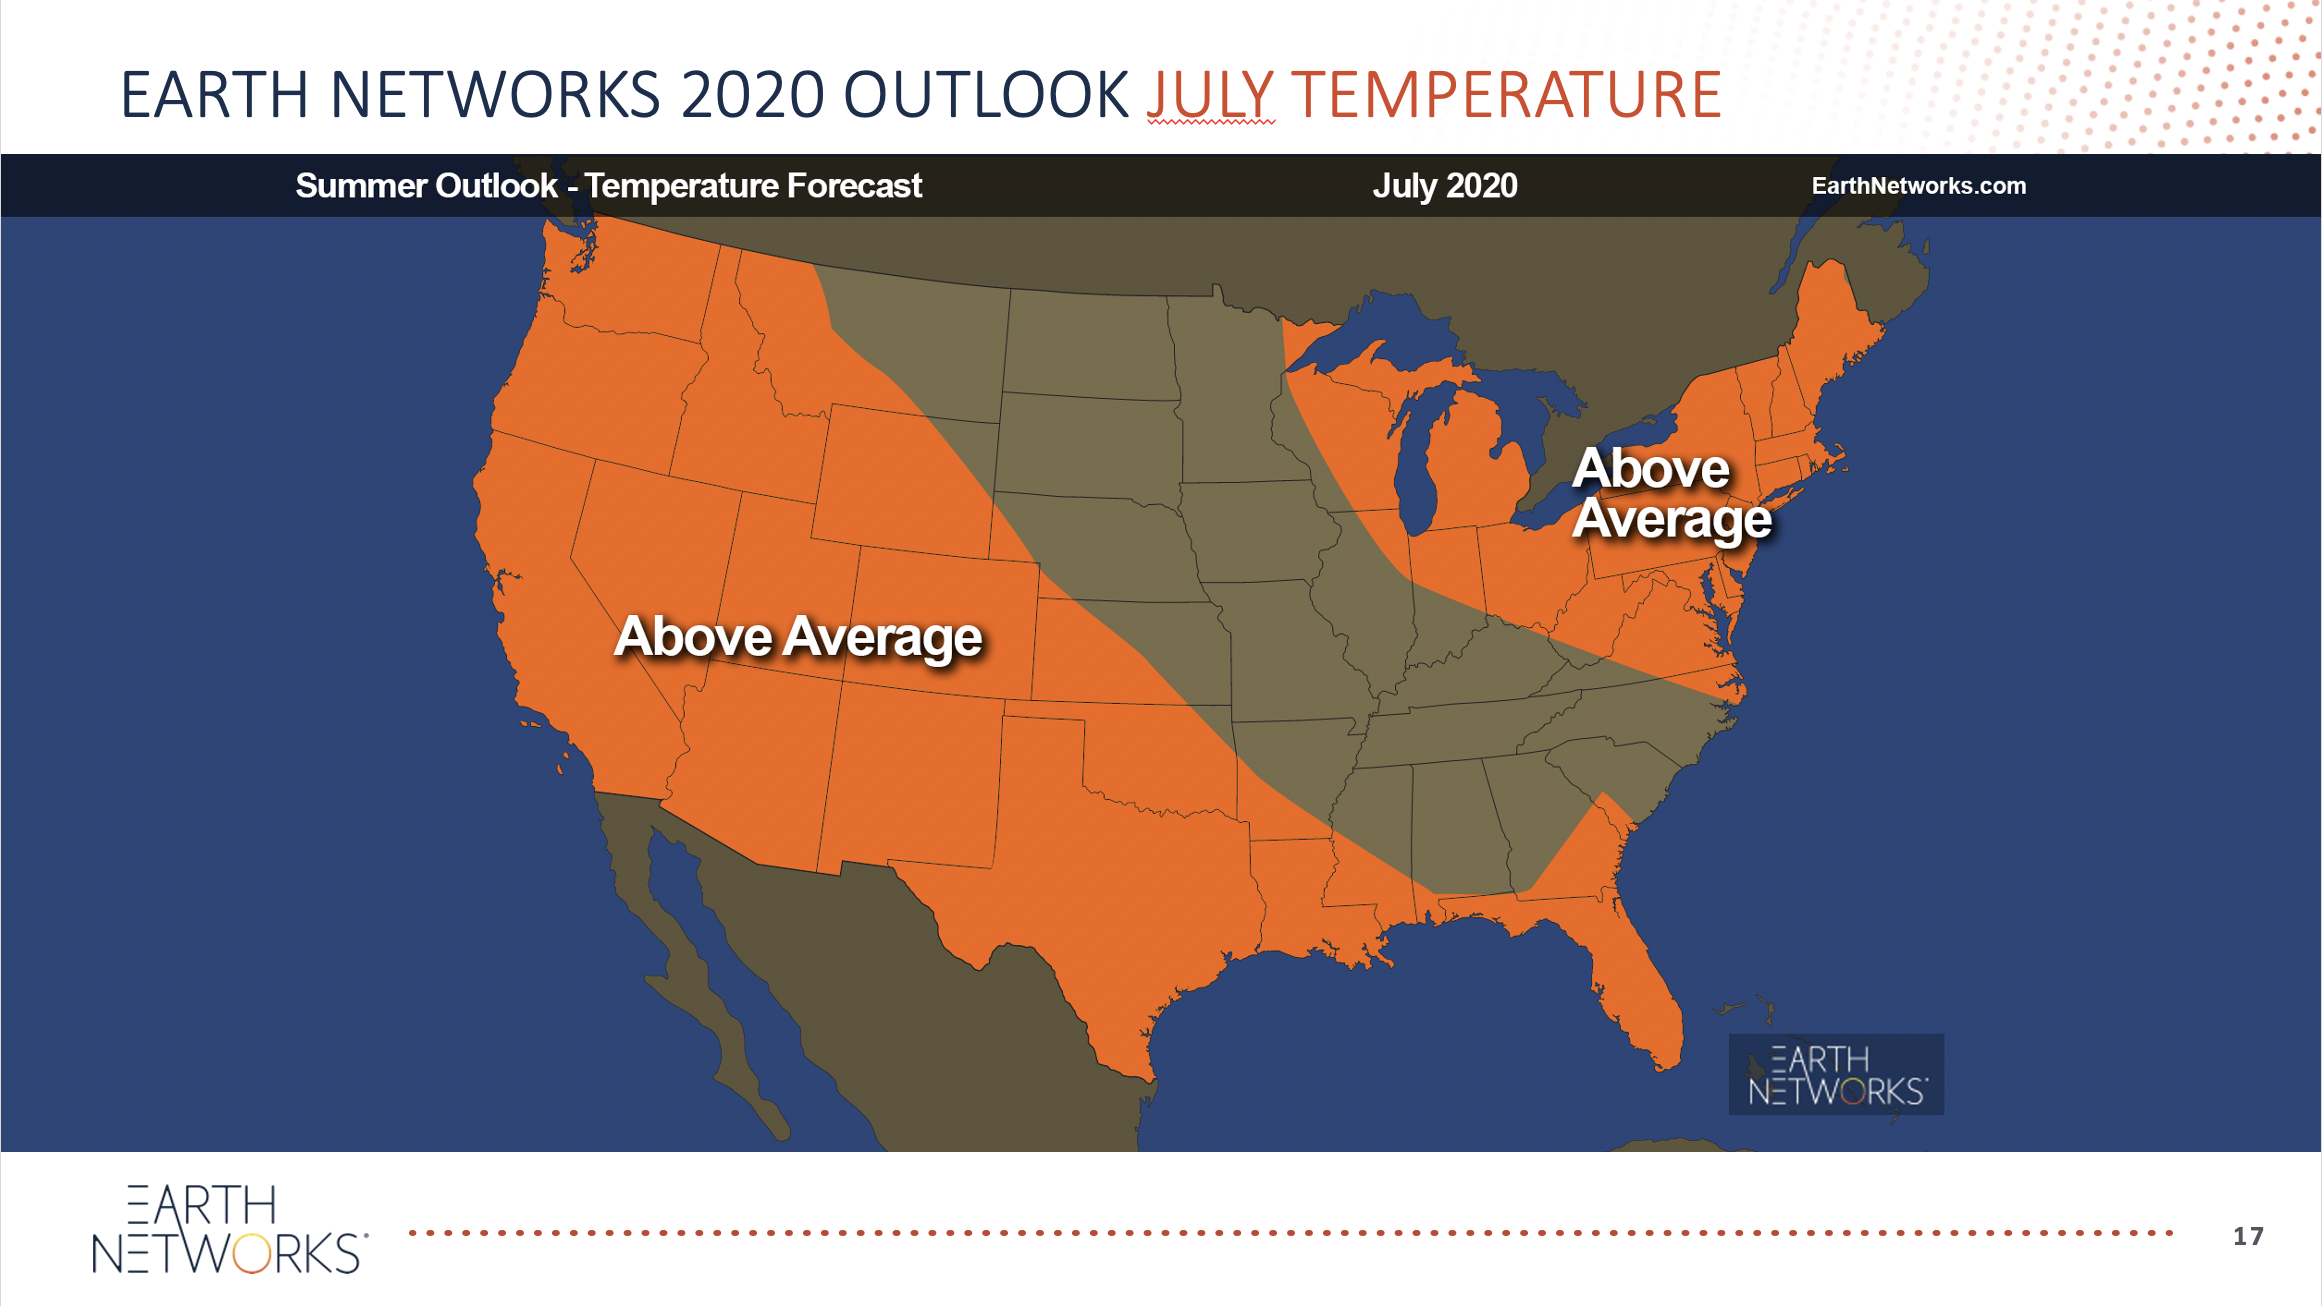 2020 Summer Outlook Temperatures for july